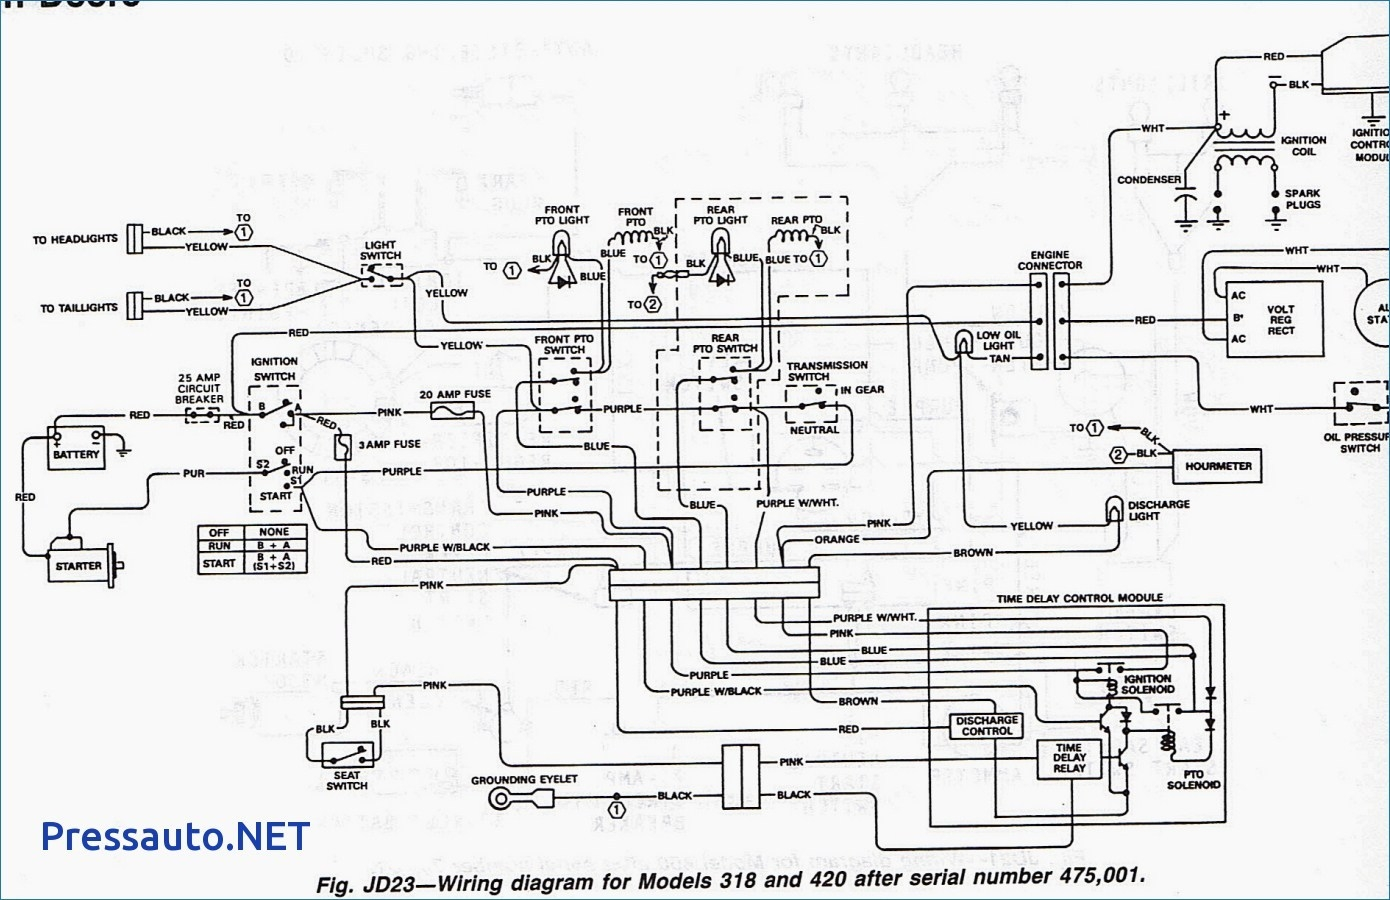 John Deere 111 Wiring Schematic | Wiring Schematic Diagram on john deere pto repair, john deere pto piston, john deere l120 hydrostatic transmission diagram, john deere rx75 parts diagram, john deere pto generator, john deere 4100 electrical diagram, john deere pto disassembly, snapper pto wiring diagram, john deere pto cover, ford pto wiring diagram, exmark pto wiring diagram, john deere tractor parts diagrams, scag pto wiring diagram, john deere pto drive shaft, john deere pto clutch, stx46 wiring diagram, dixon pto wiring diagram, john deere snow plow parts manuals, john deere pto parts, pto clutch wiring diagram,